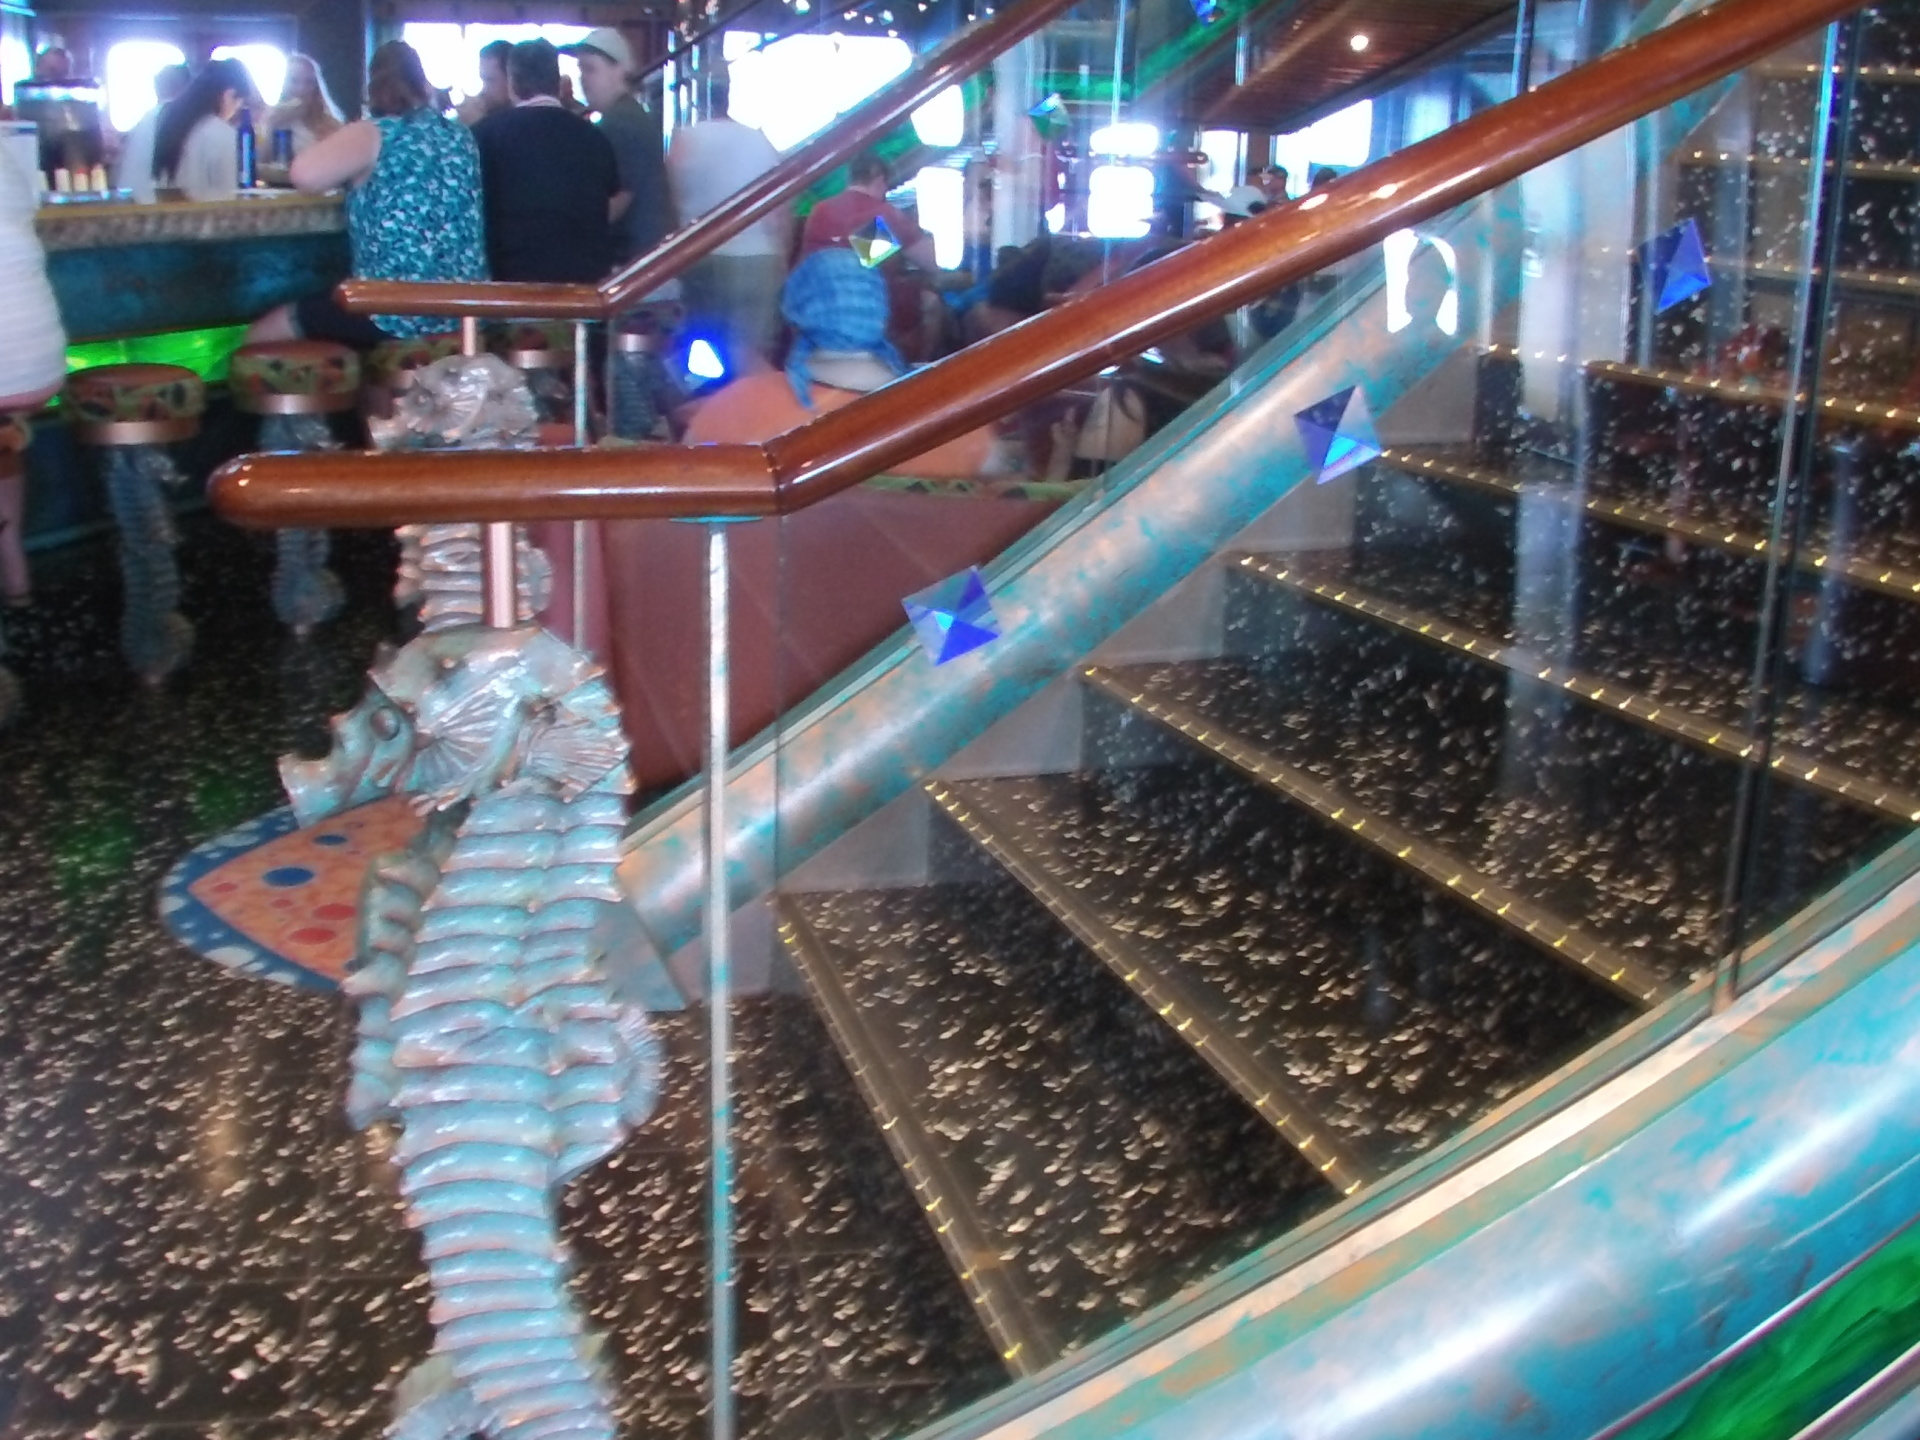 Carnival Victory stairway